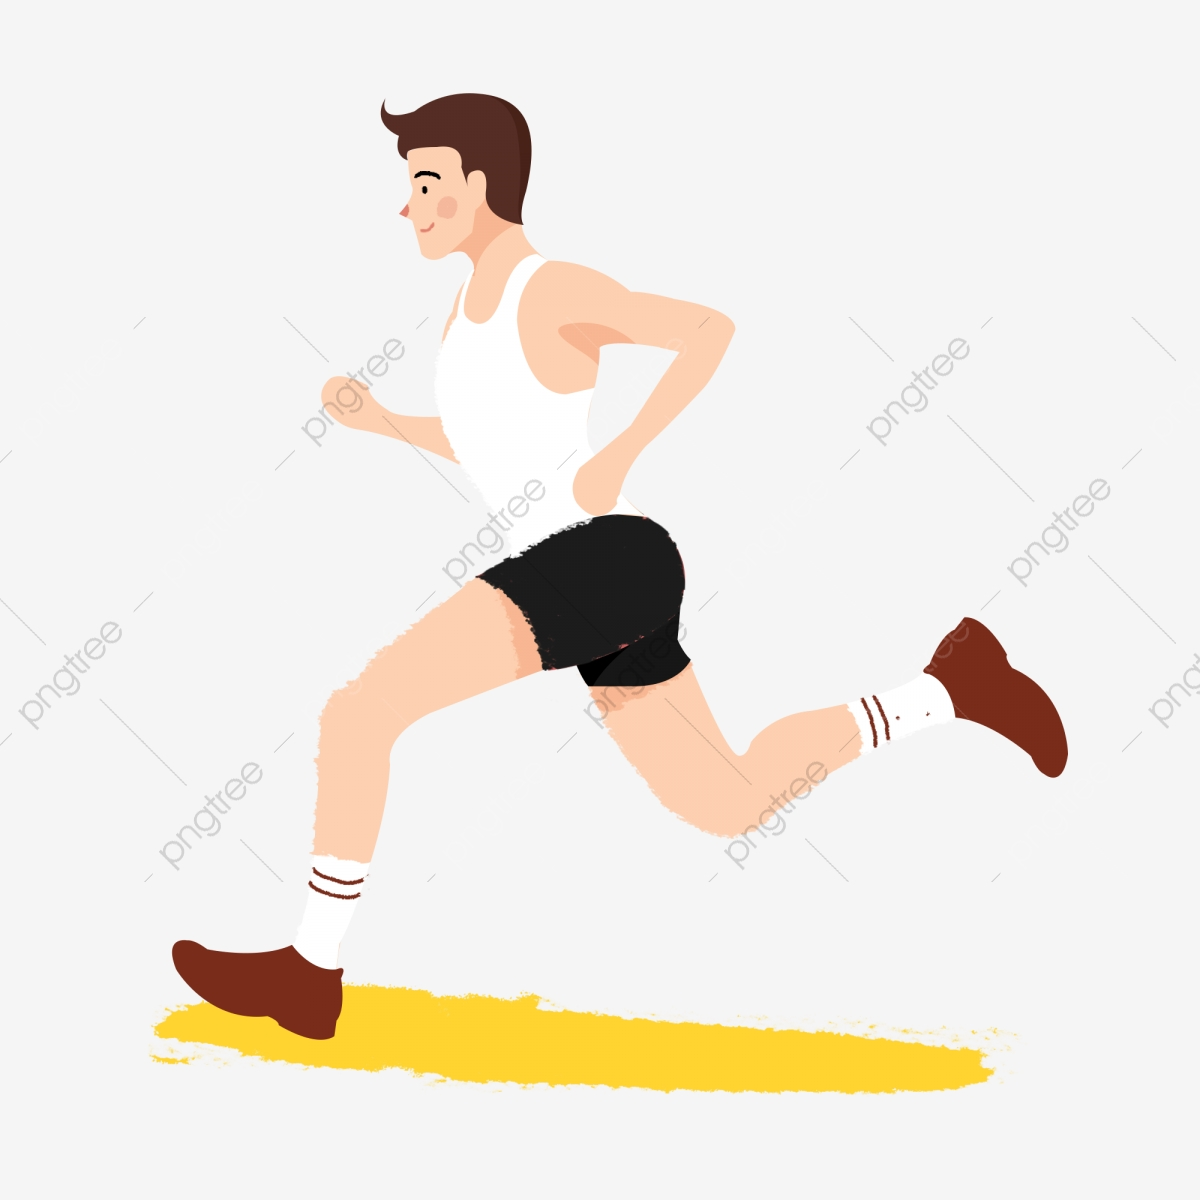 Hand Drawn Cartoon Running Male Athlete In Fitness Morning Exercise Hand Painted Cartoon Run Png Transparent Clipart Image And Psd File For Free Download